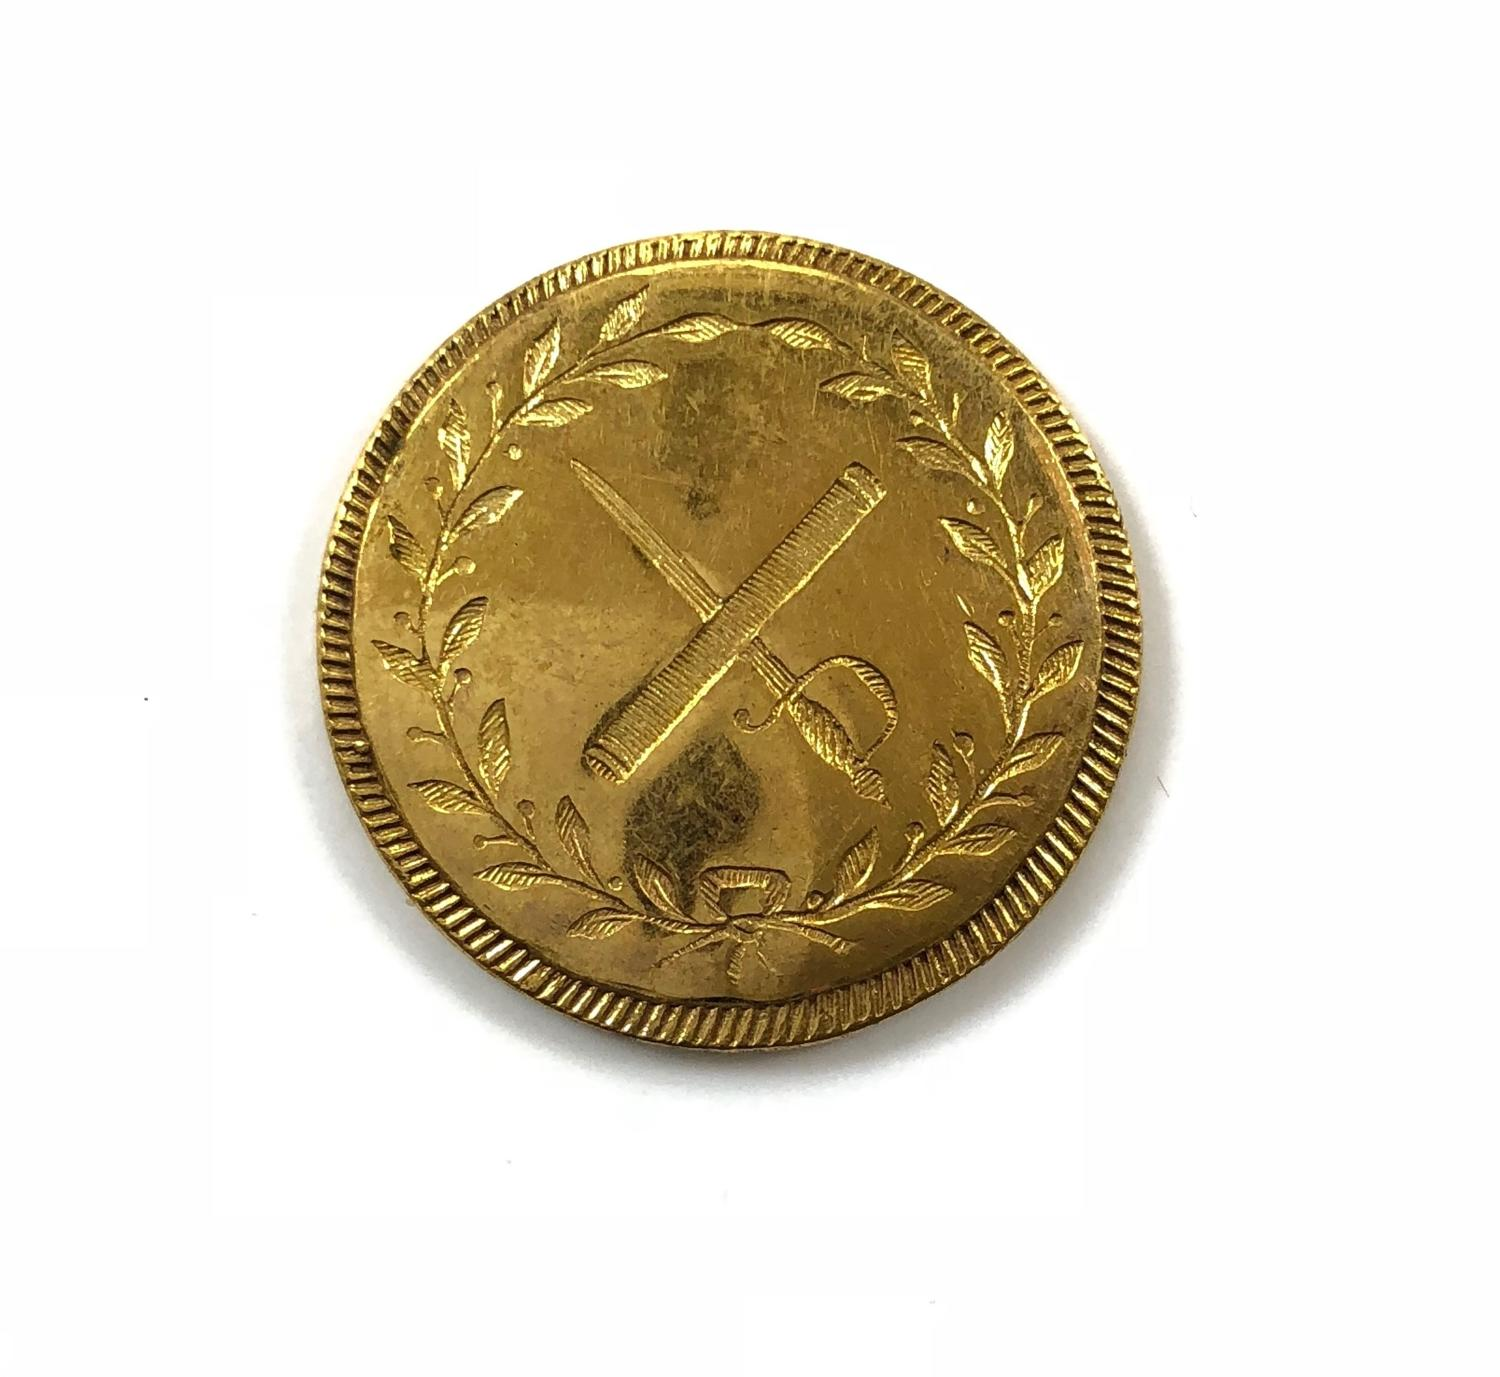 General's Georgian gilt coatee button circa 1797-1811.